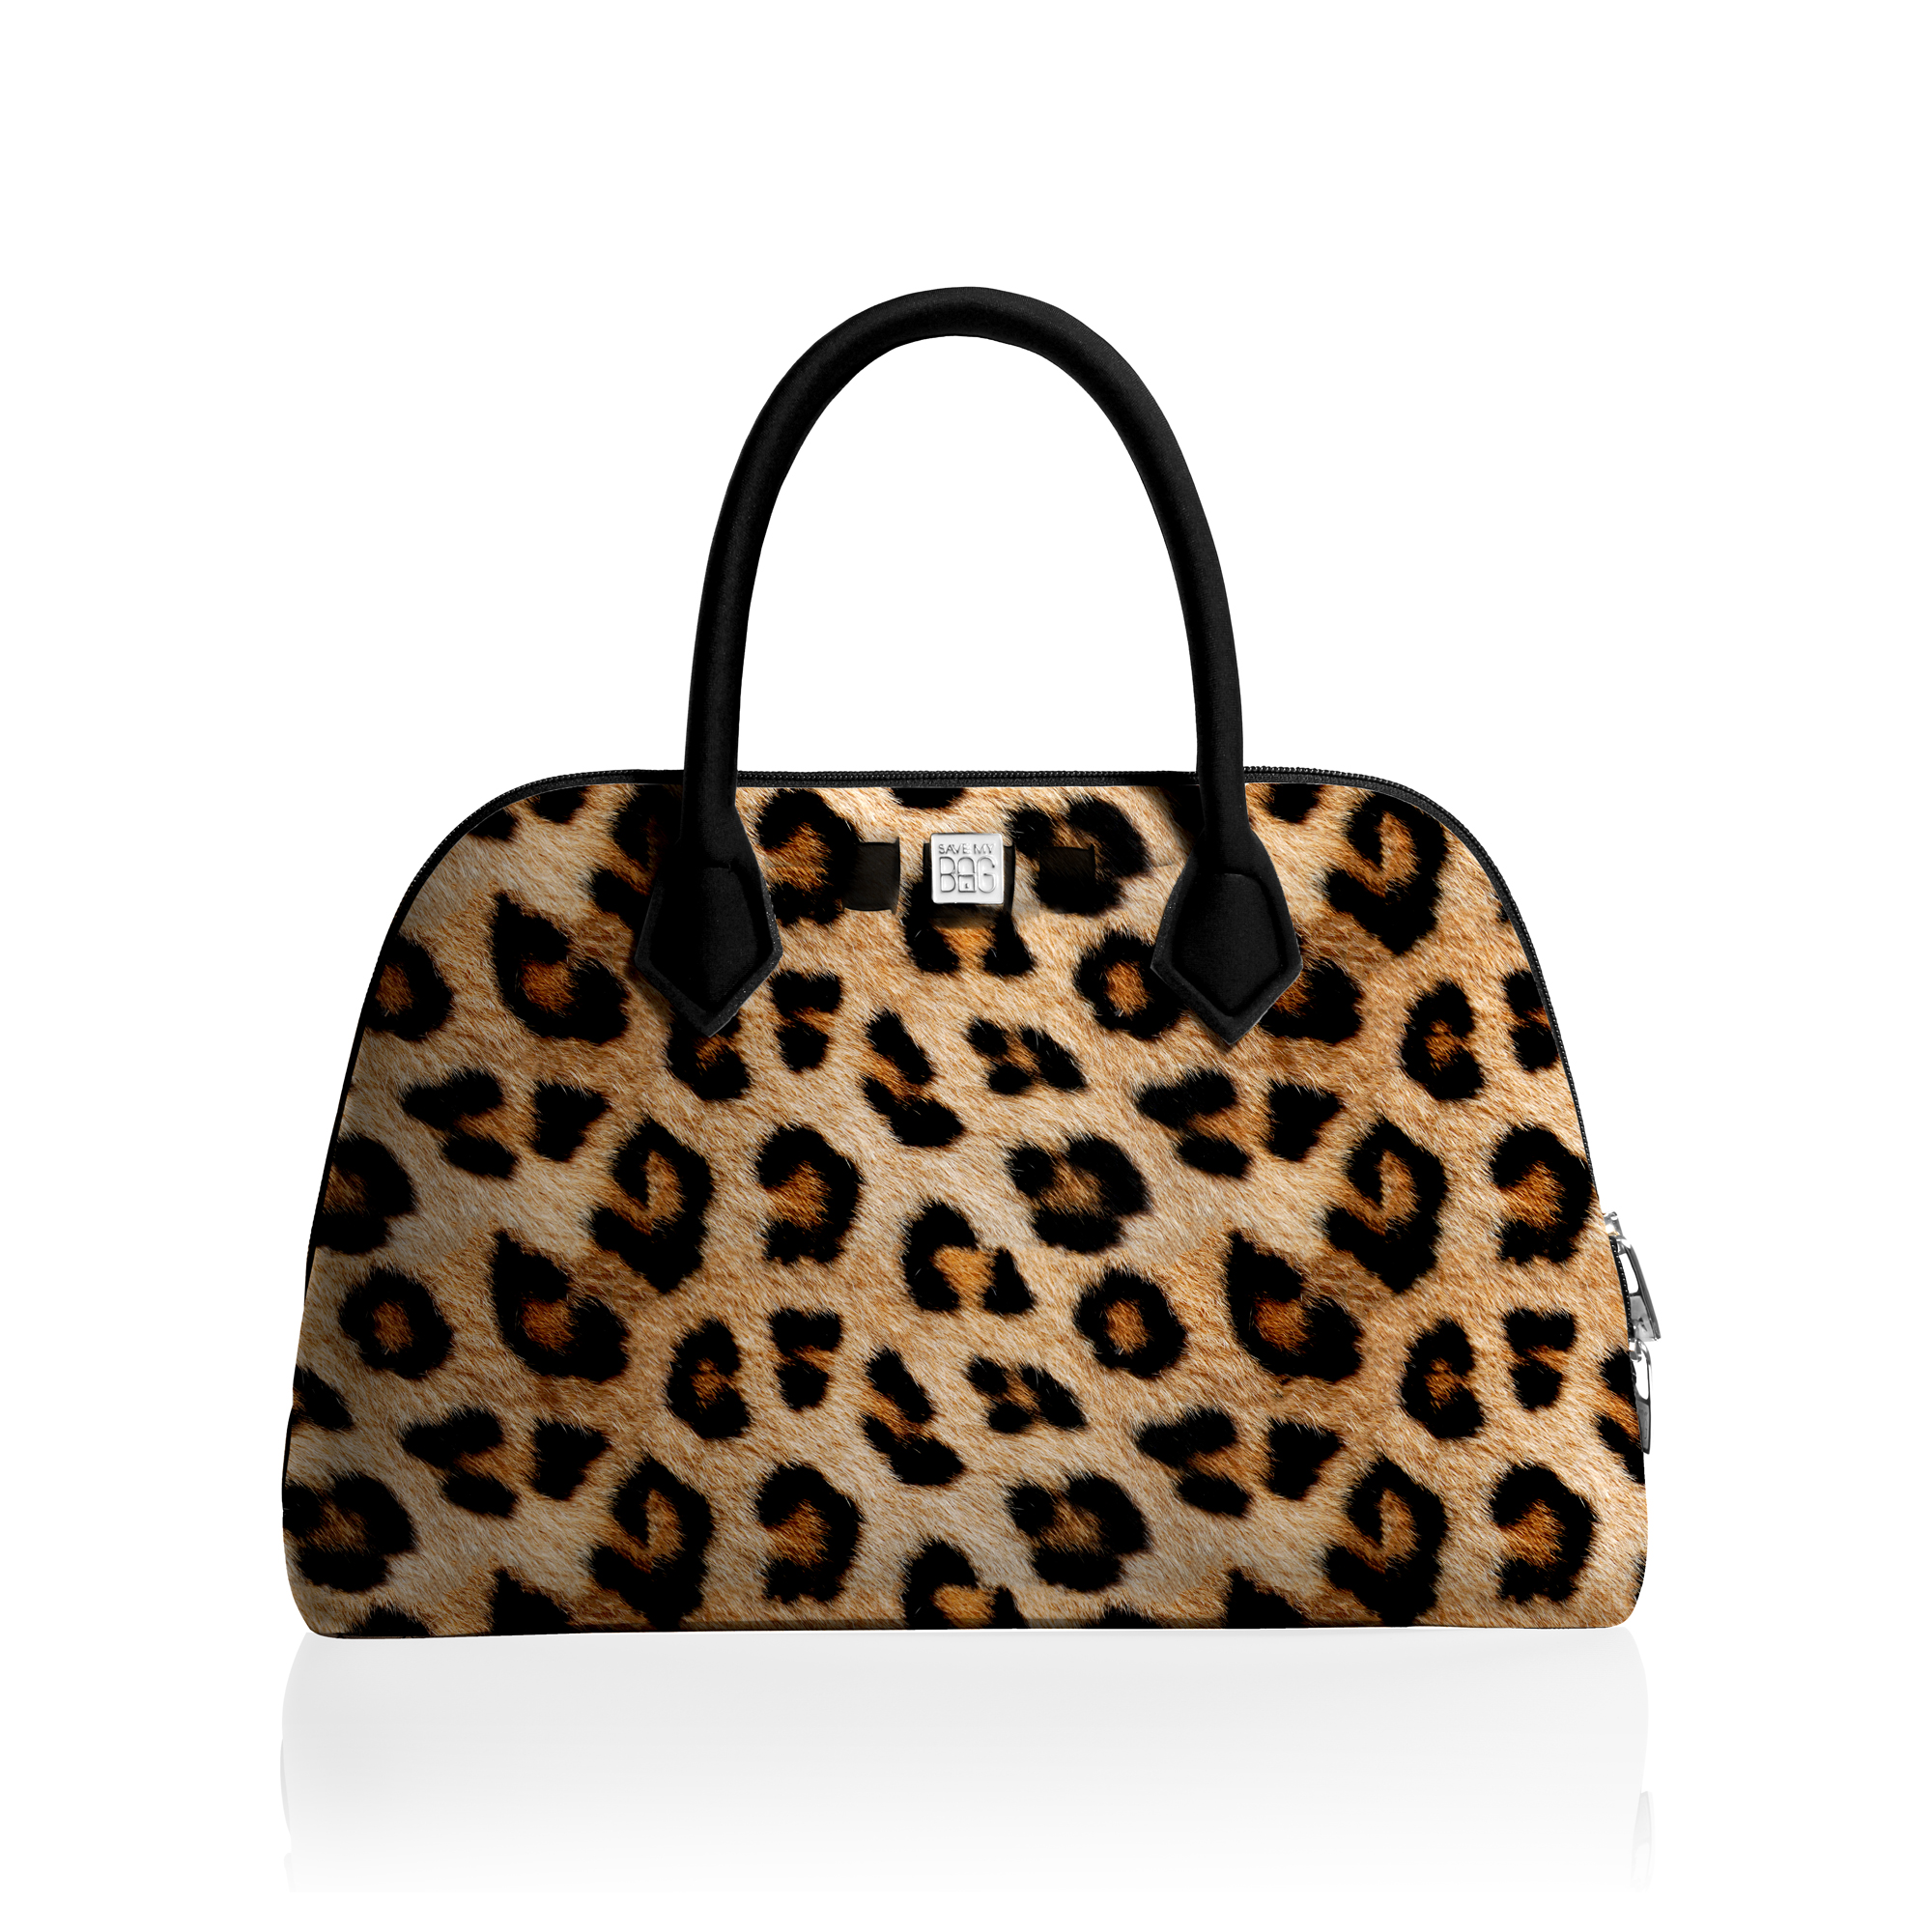 c73a3699c0 Save My Bag  la nuova capsule collection all insegna dell animalier -